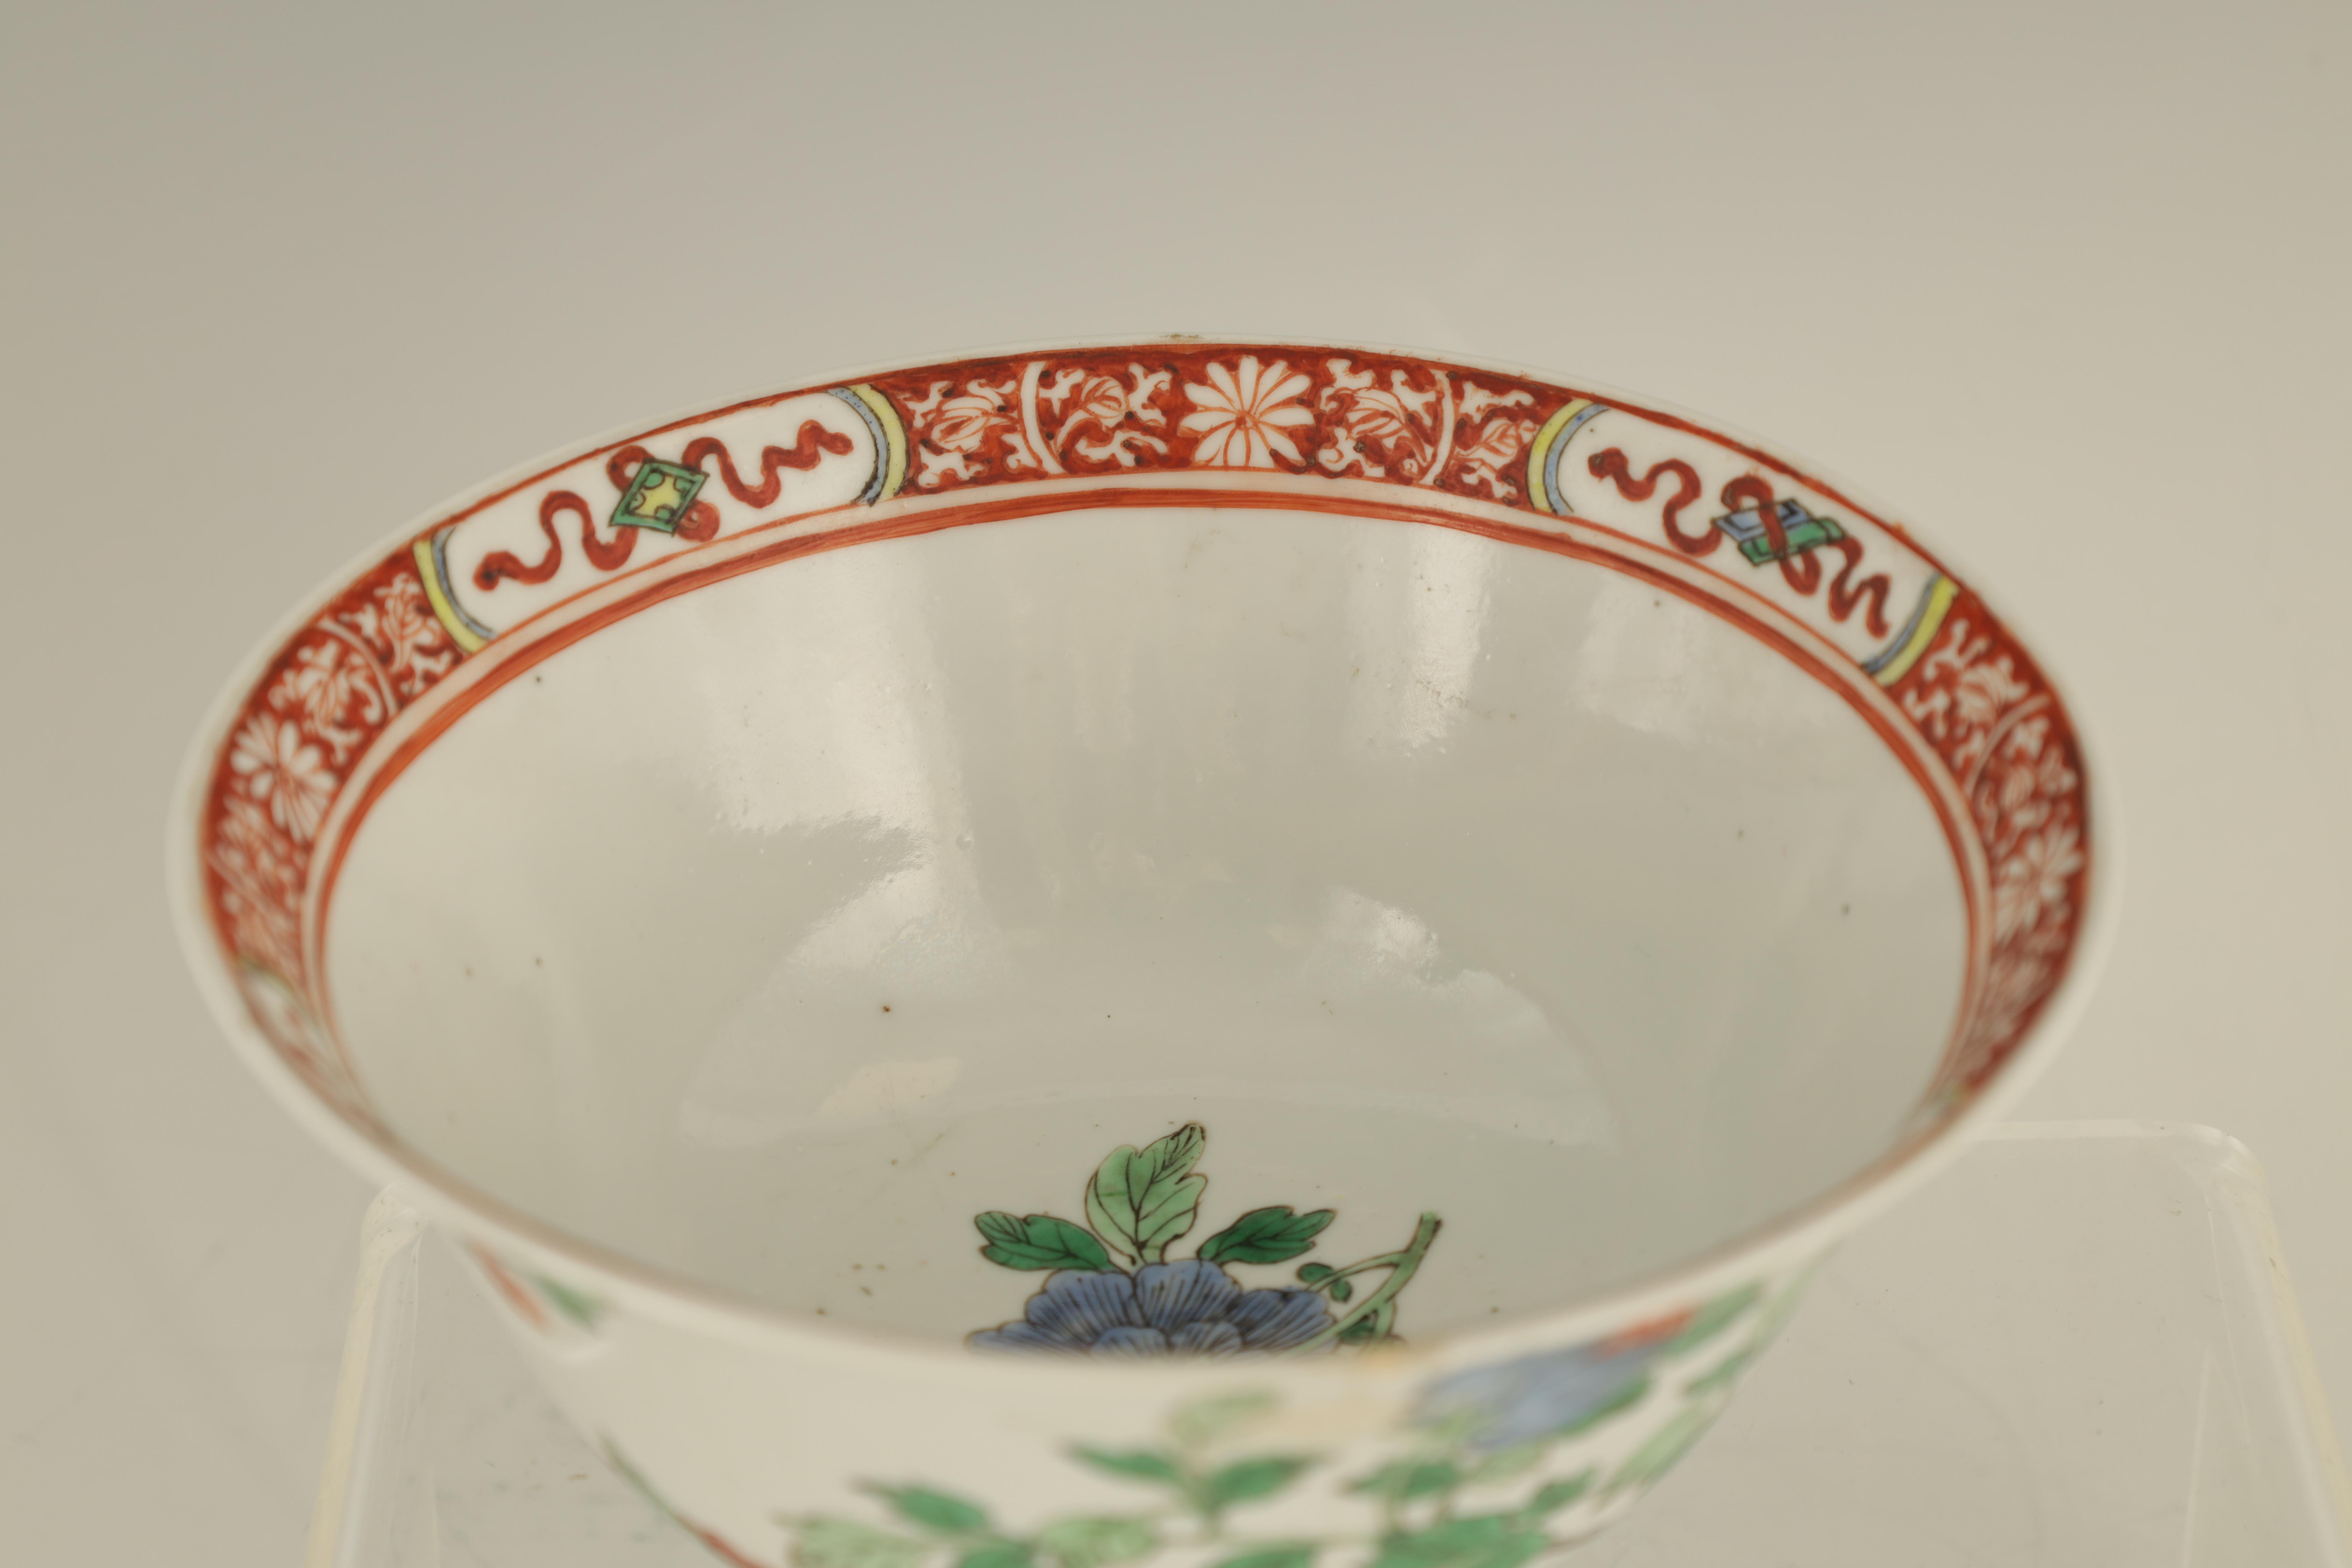 AN 18TH CENTURY CHINESE FAMILLE VERTE PORCELAIN BOWL BEARING KANGXI MARKS decorated with birds - Image 5 of 7